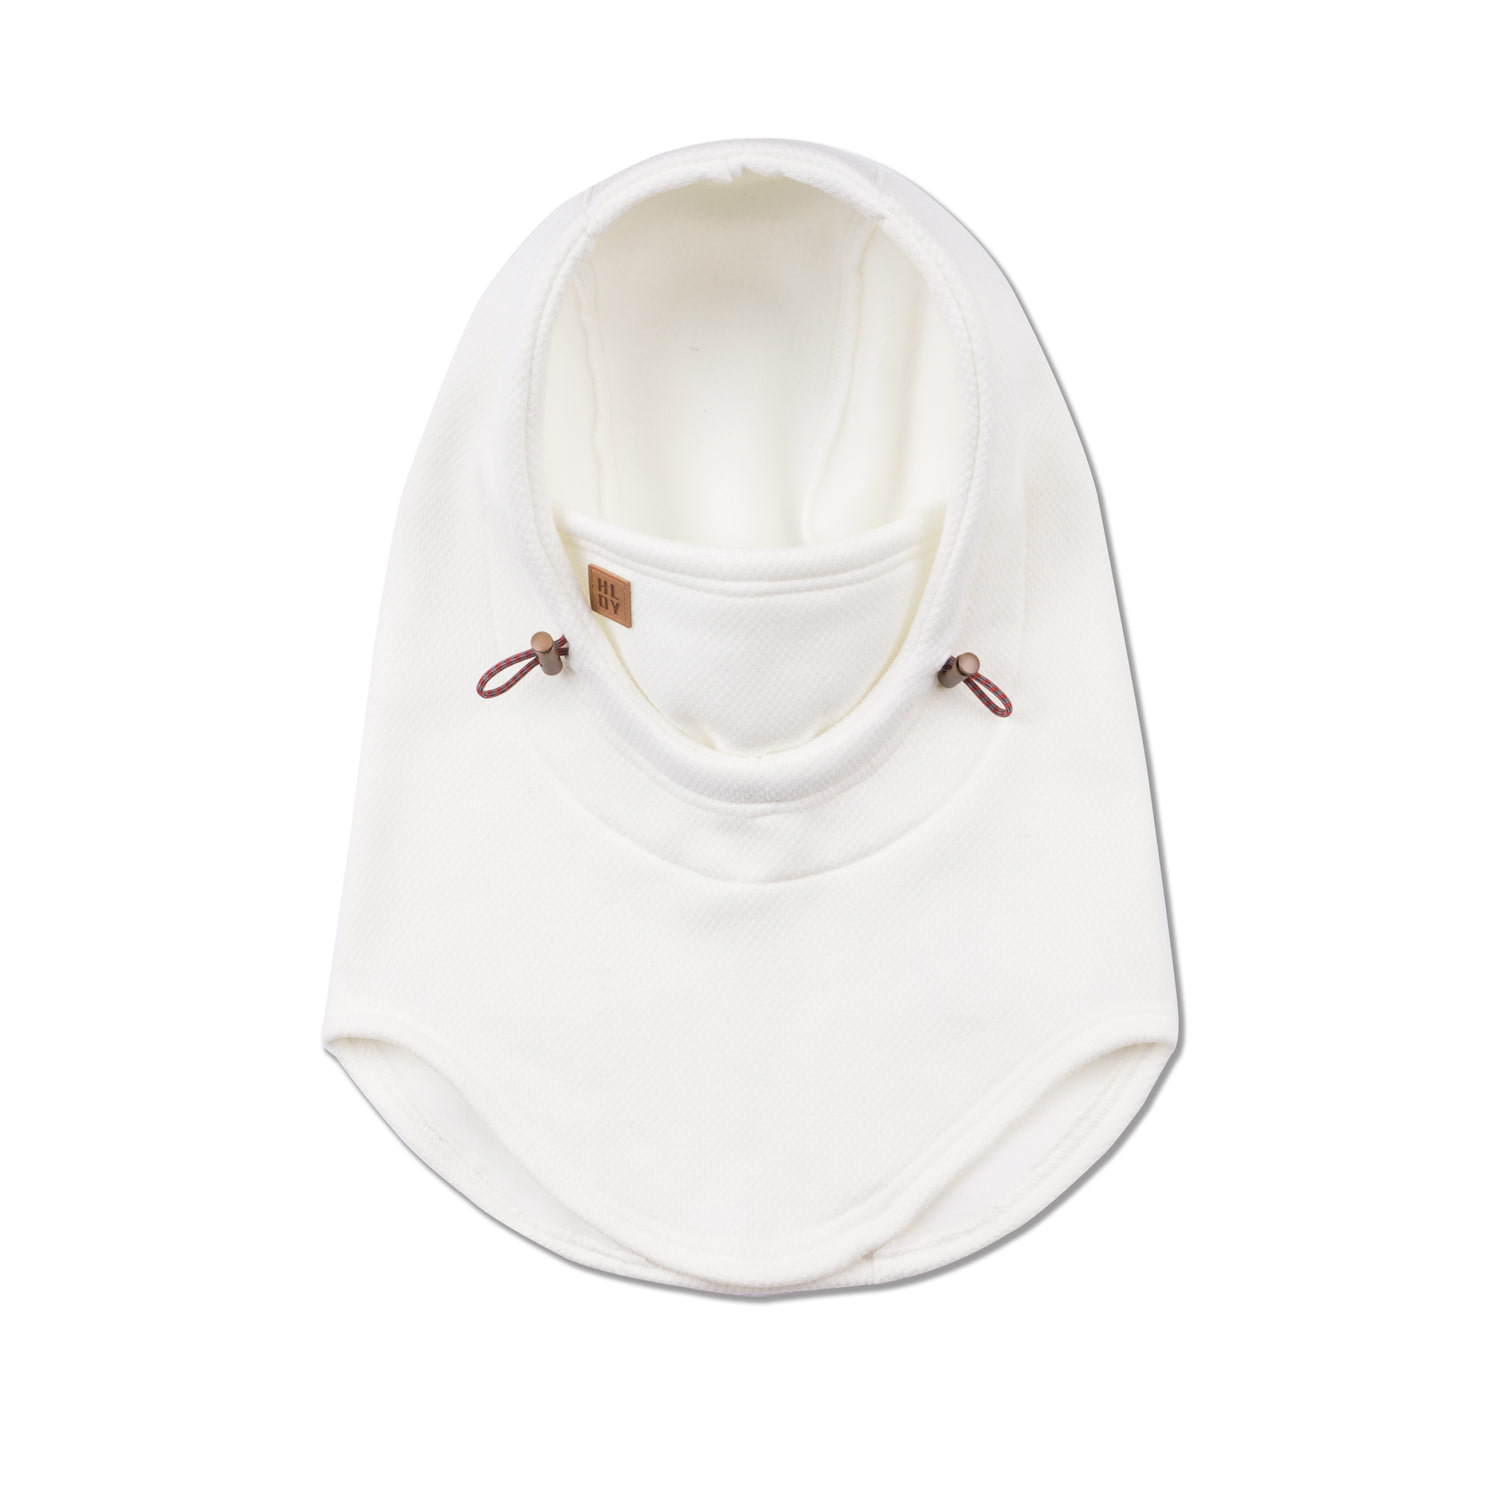 BASIC hood warmer- whiteHOLIDAY OUTERWEAR